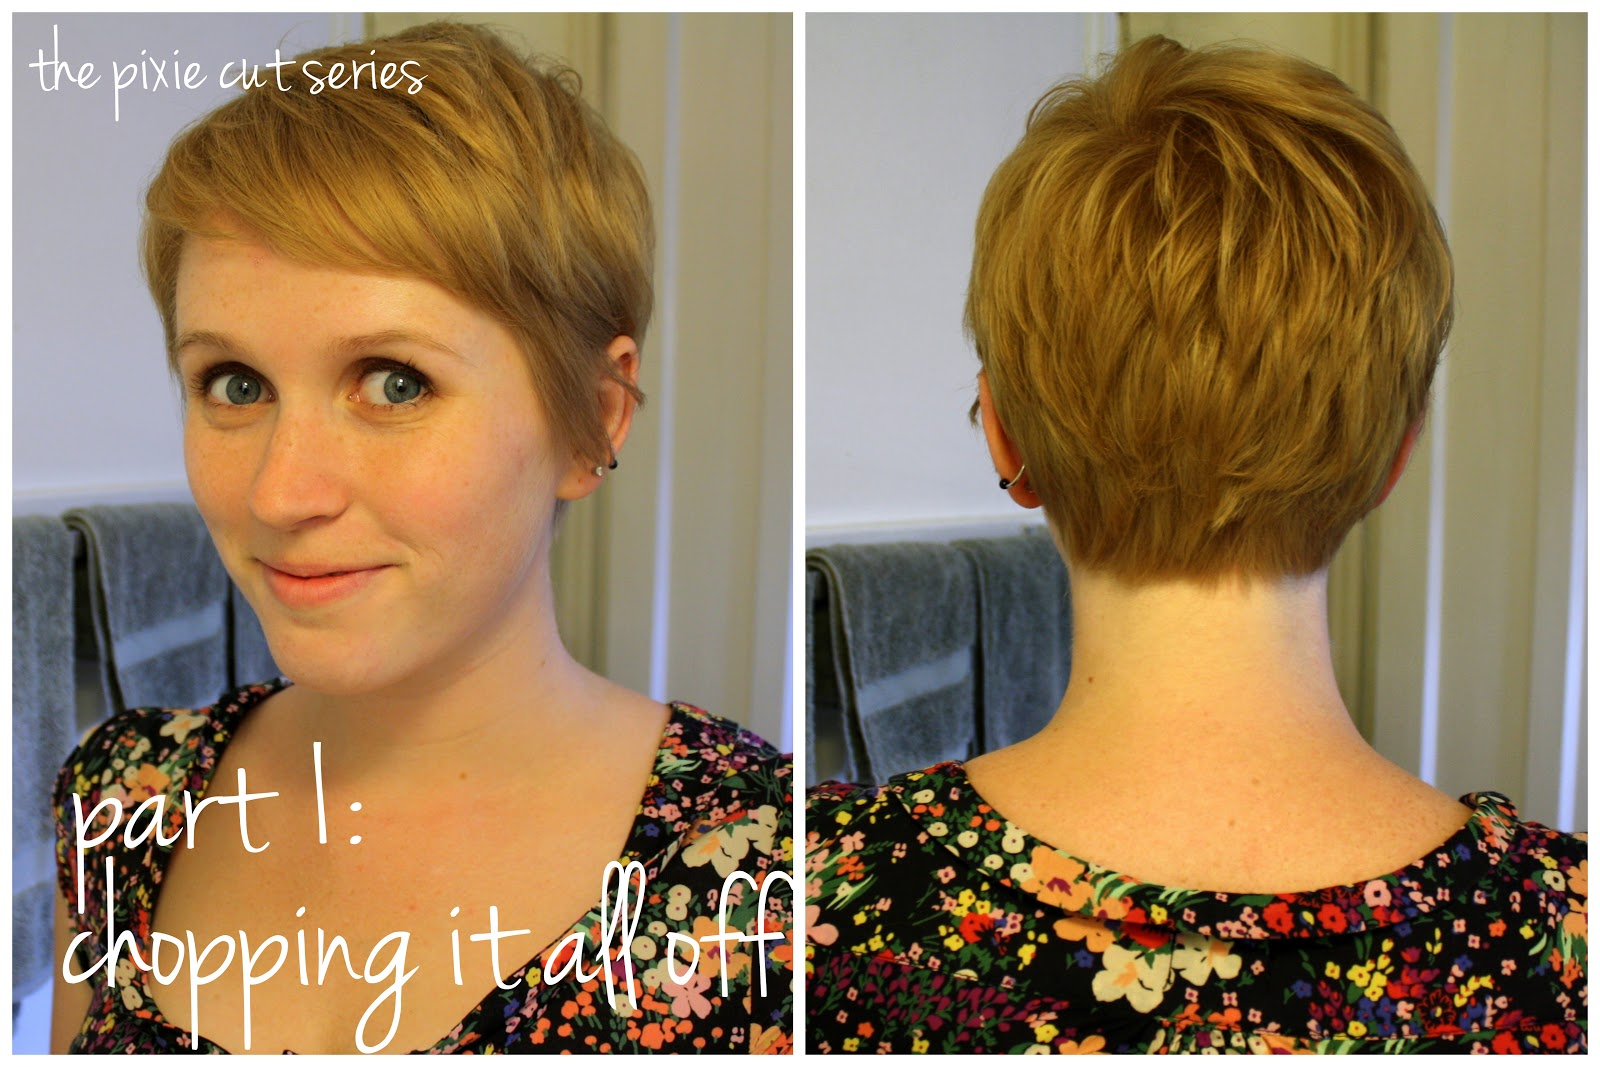 the pixie cut series, part 1: chopping it all off